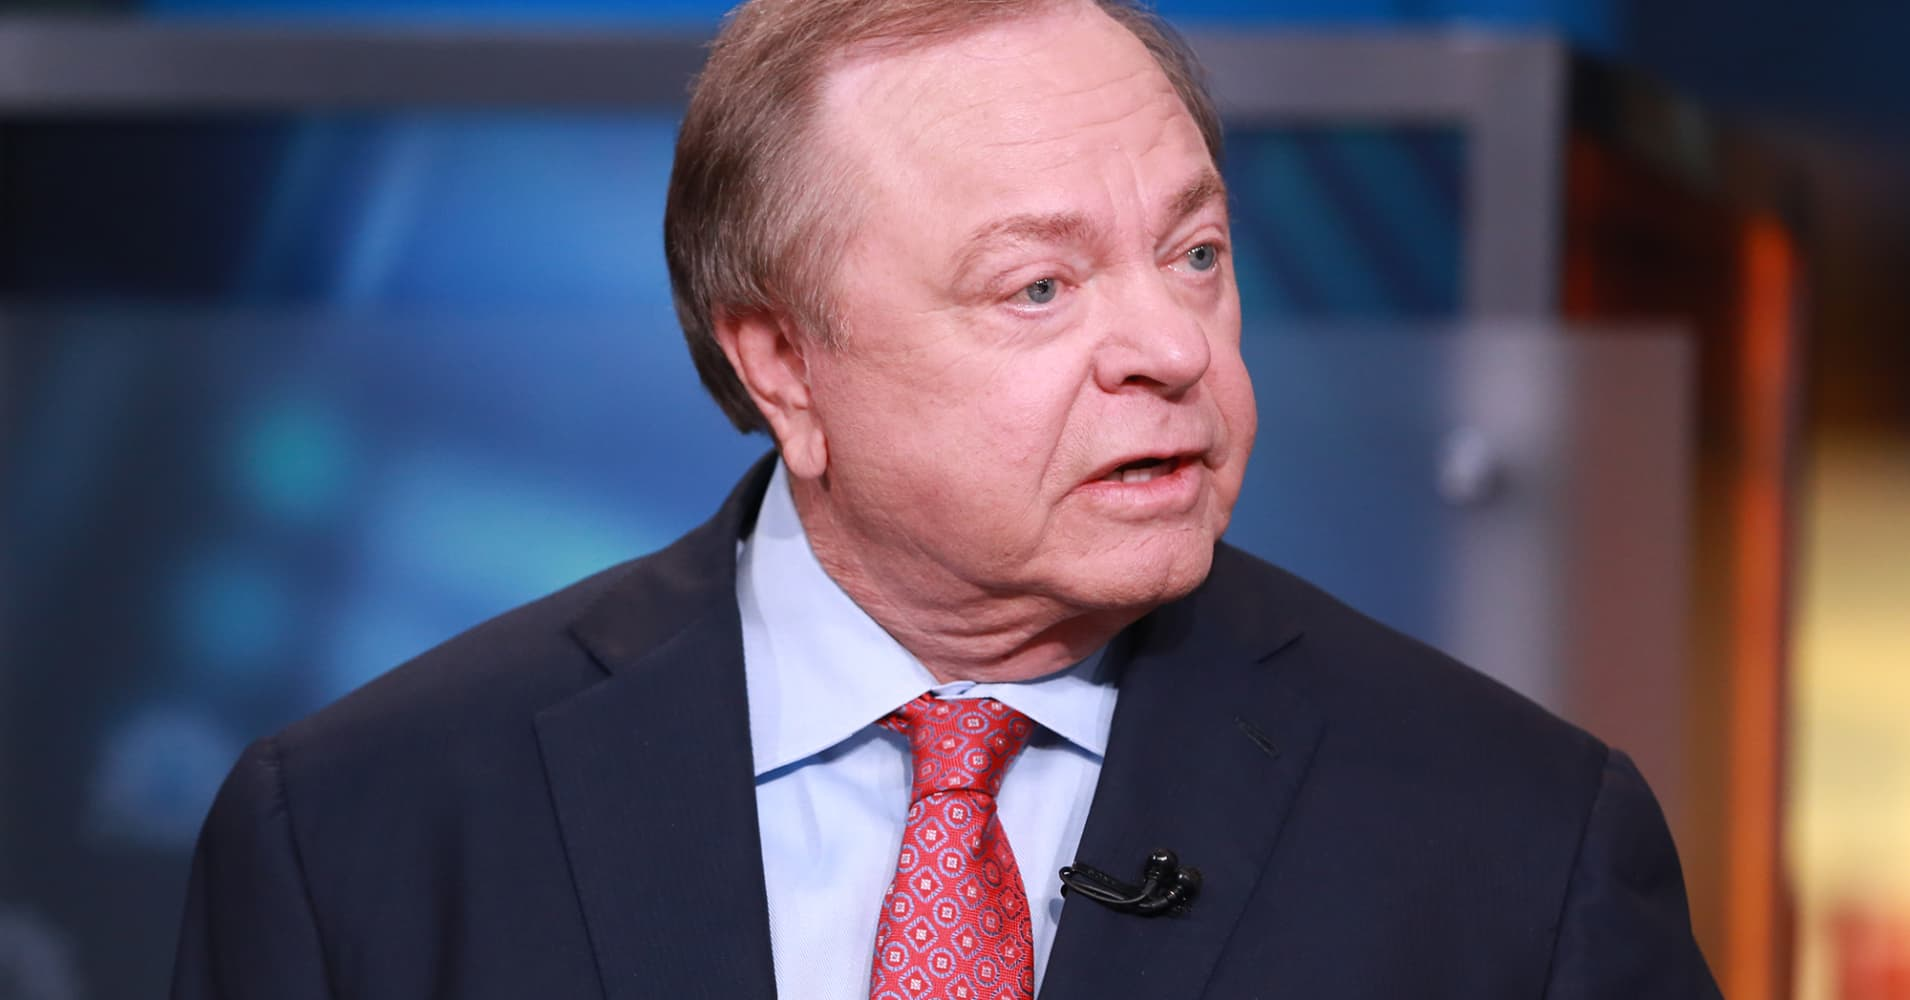 Billionaire Harold Hamm expects energy deregulation as 'Day 1 agenda' for Trump